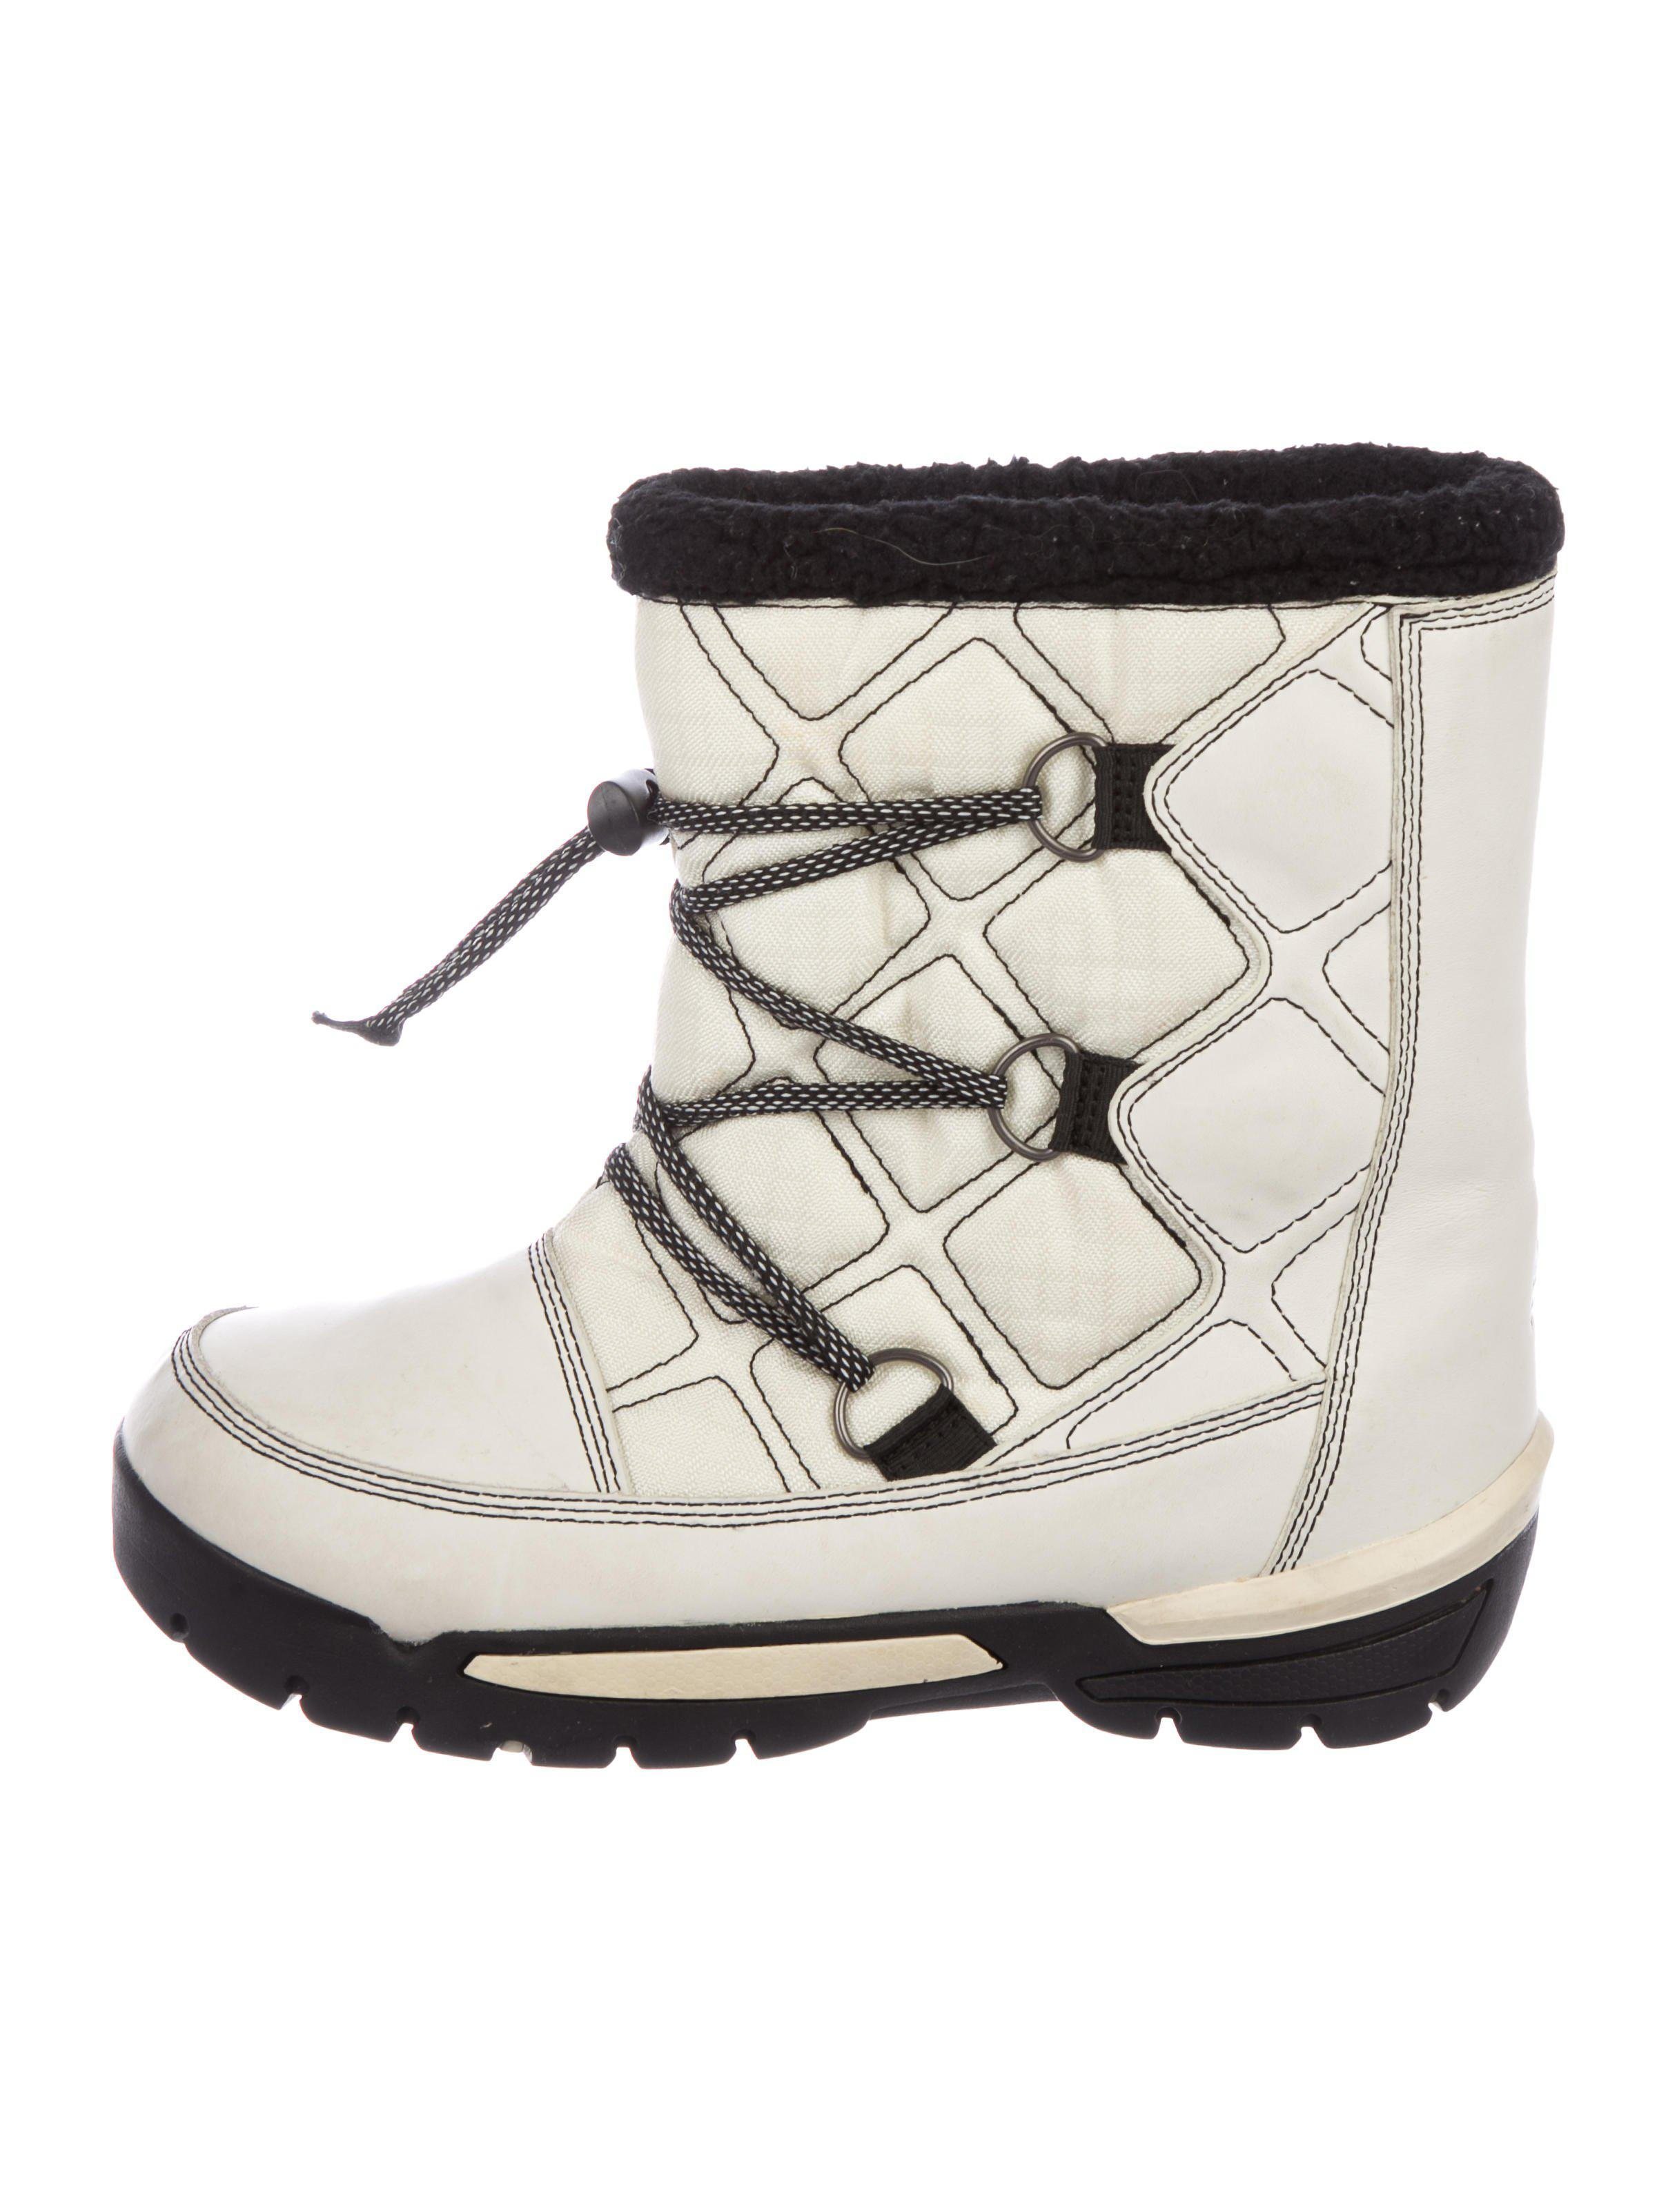 Sorel Woven Mid-Calf Boots buy cheap pay with paypal a1aznD2a4